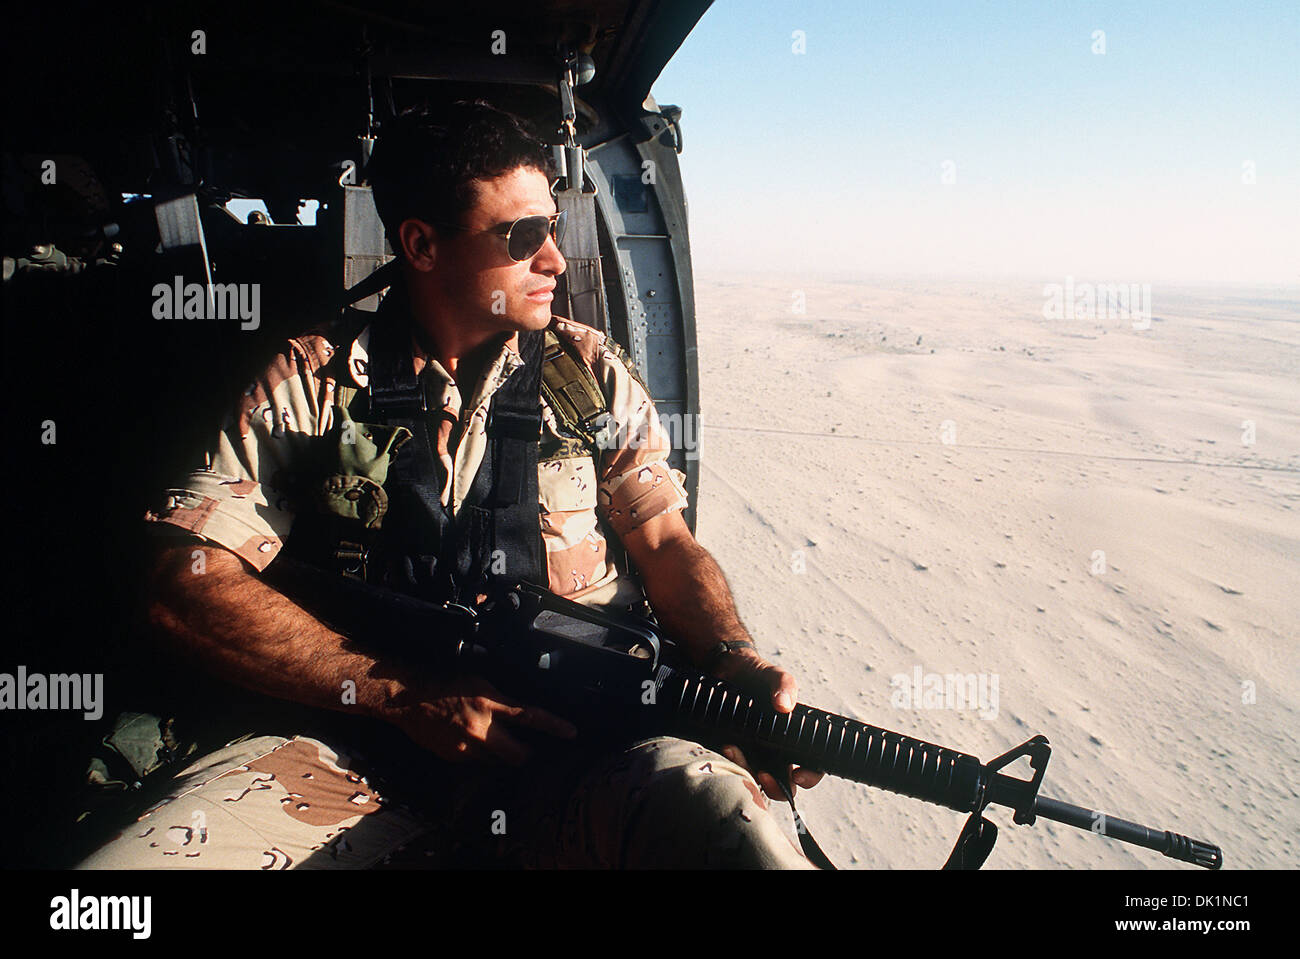 A US Army soldier keeps watch from a Black Hawk helicopter over the desert February 22, 1991 in Saudi Arabia. - Stock Image